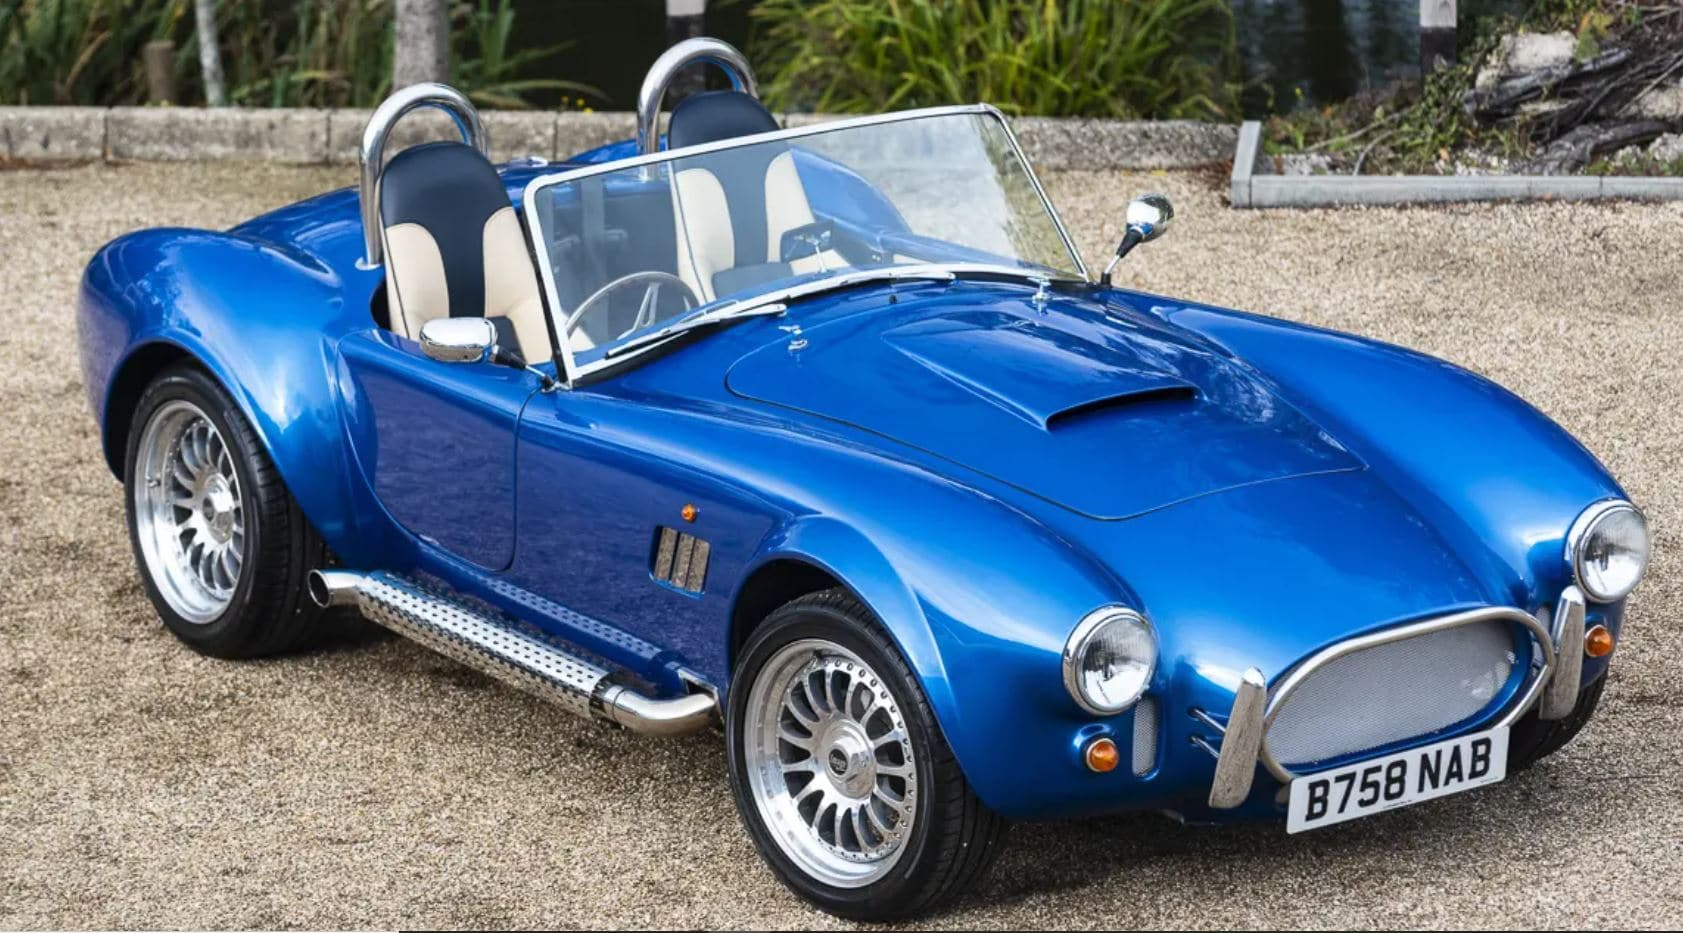 Best Cobra Replicas for Sale in the UK